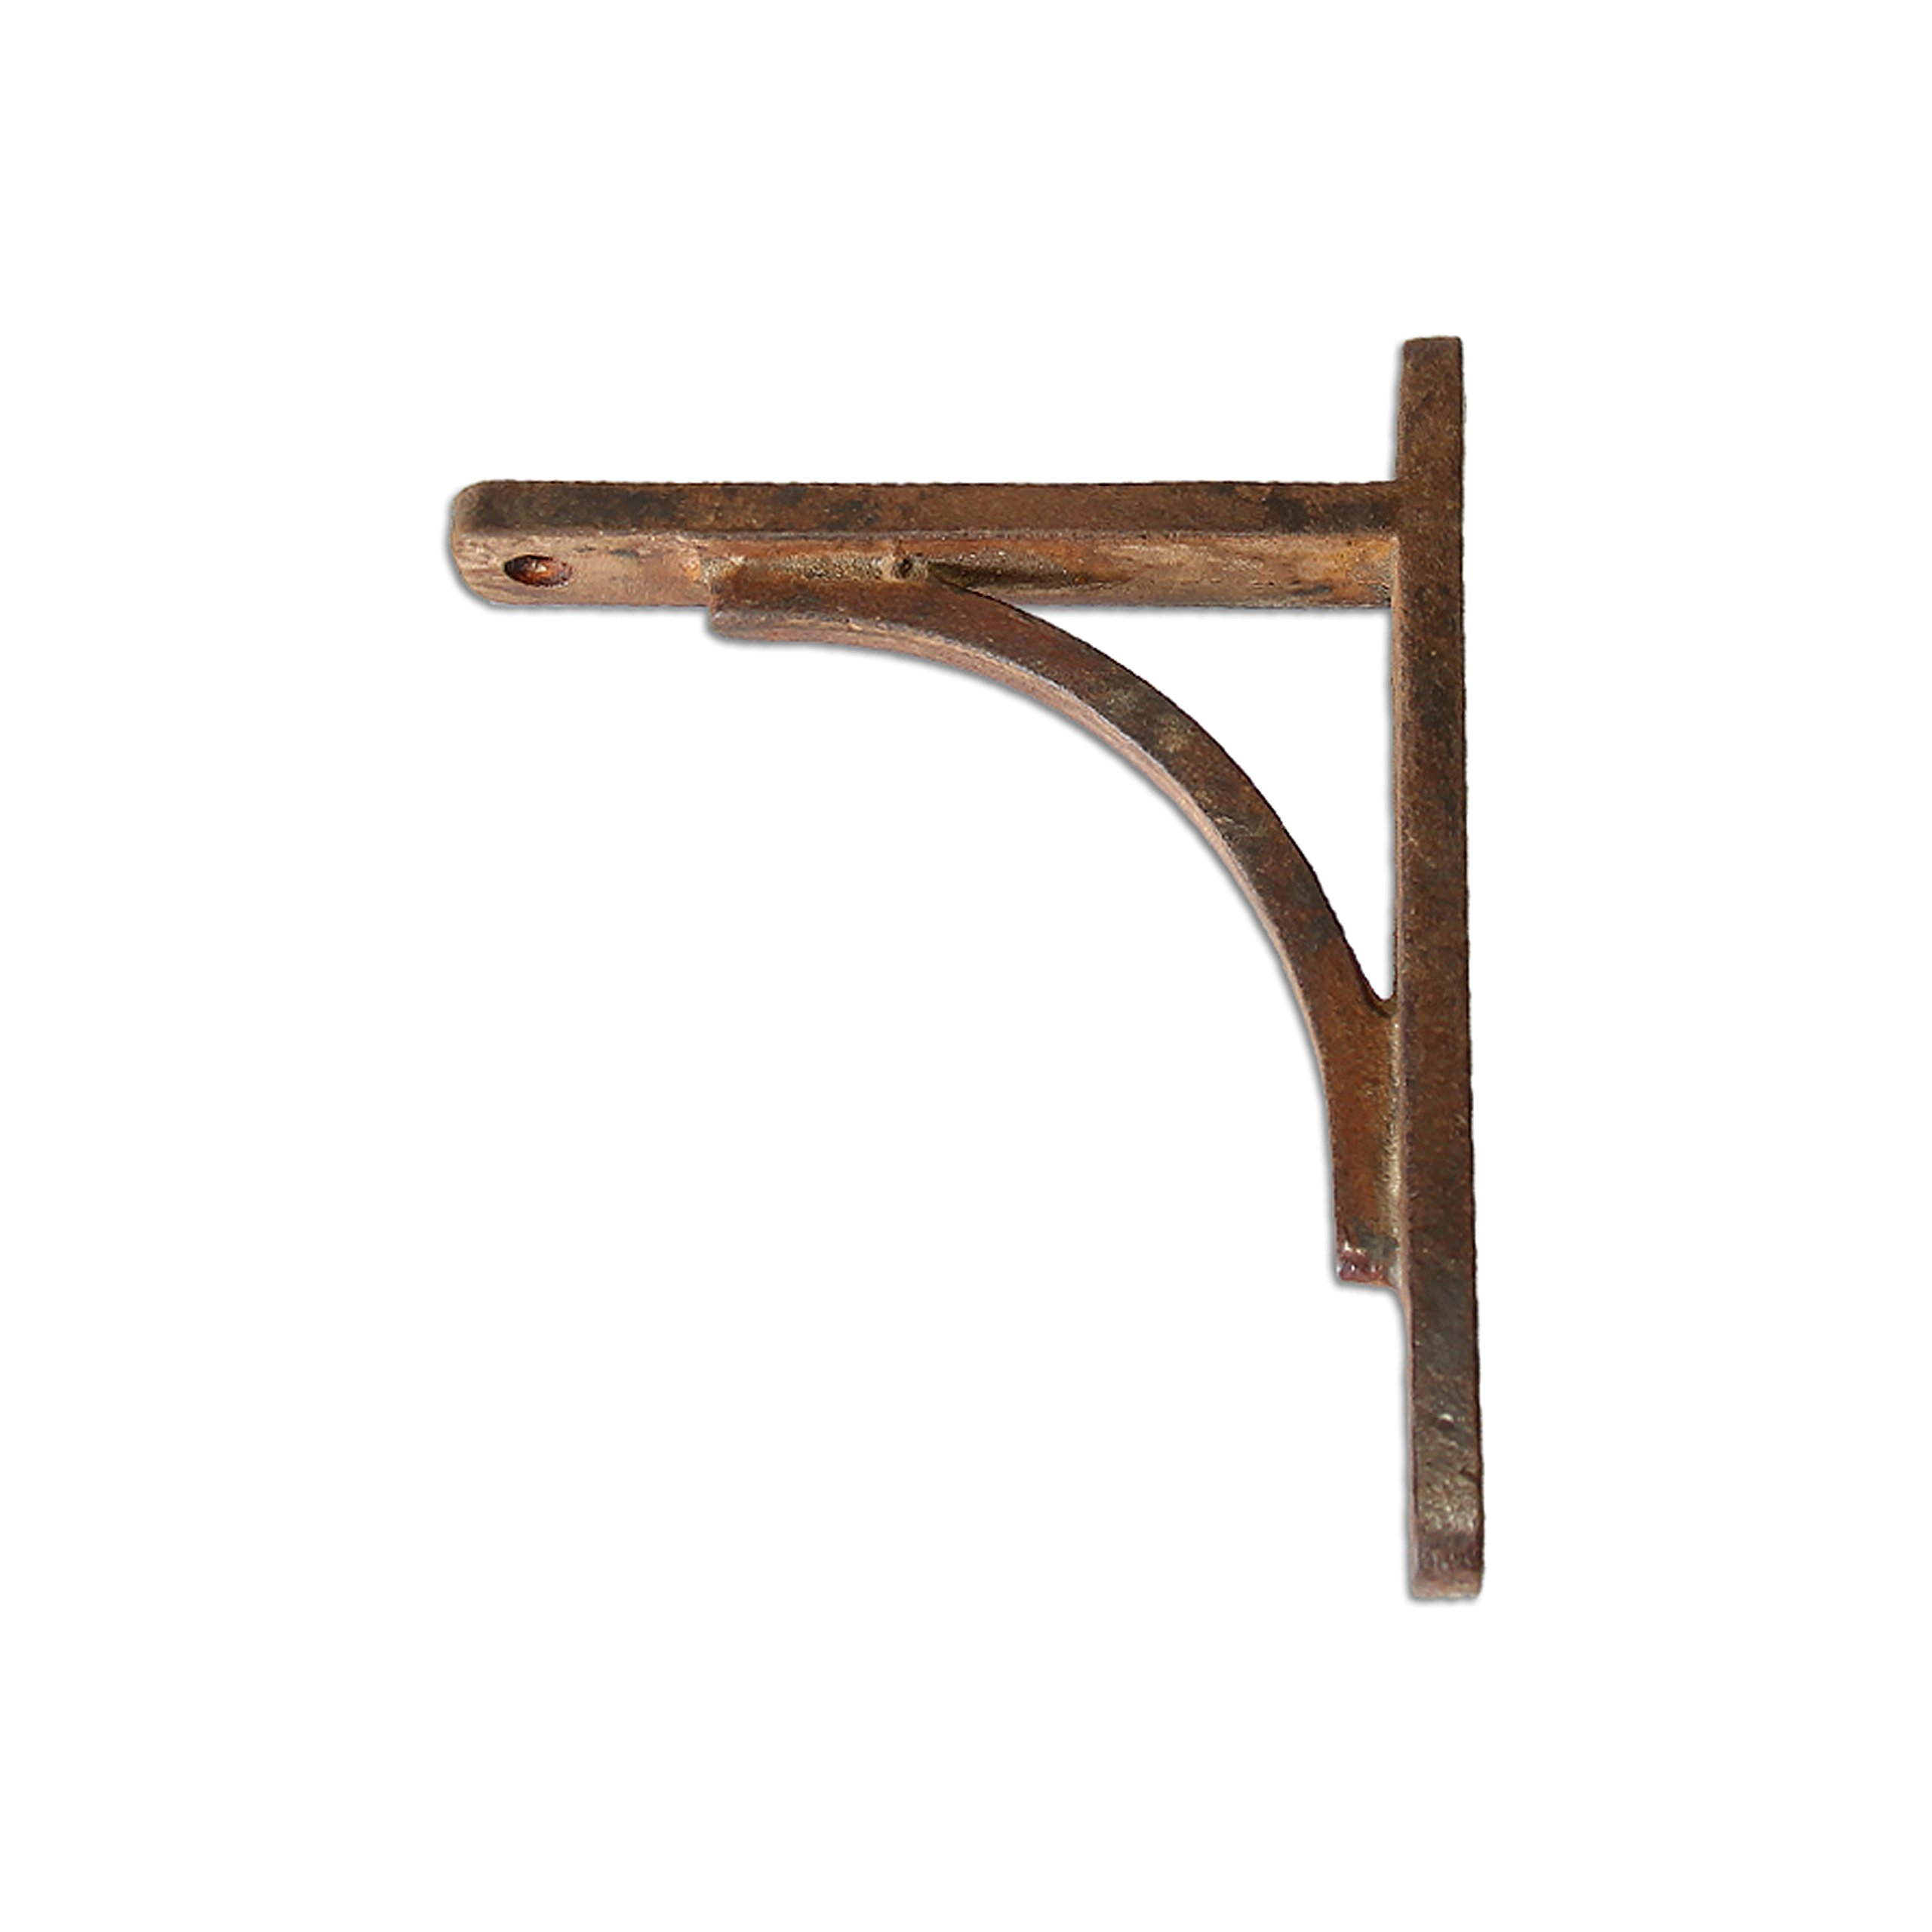 RCH Hardware Fancy Decorative Wrought Iron Shelf Bracket, Rust Finish Matching Screws Included